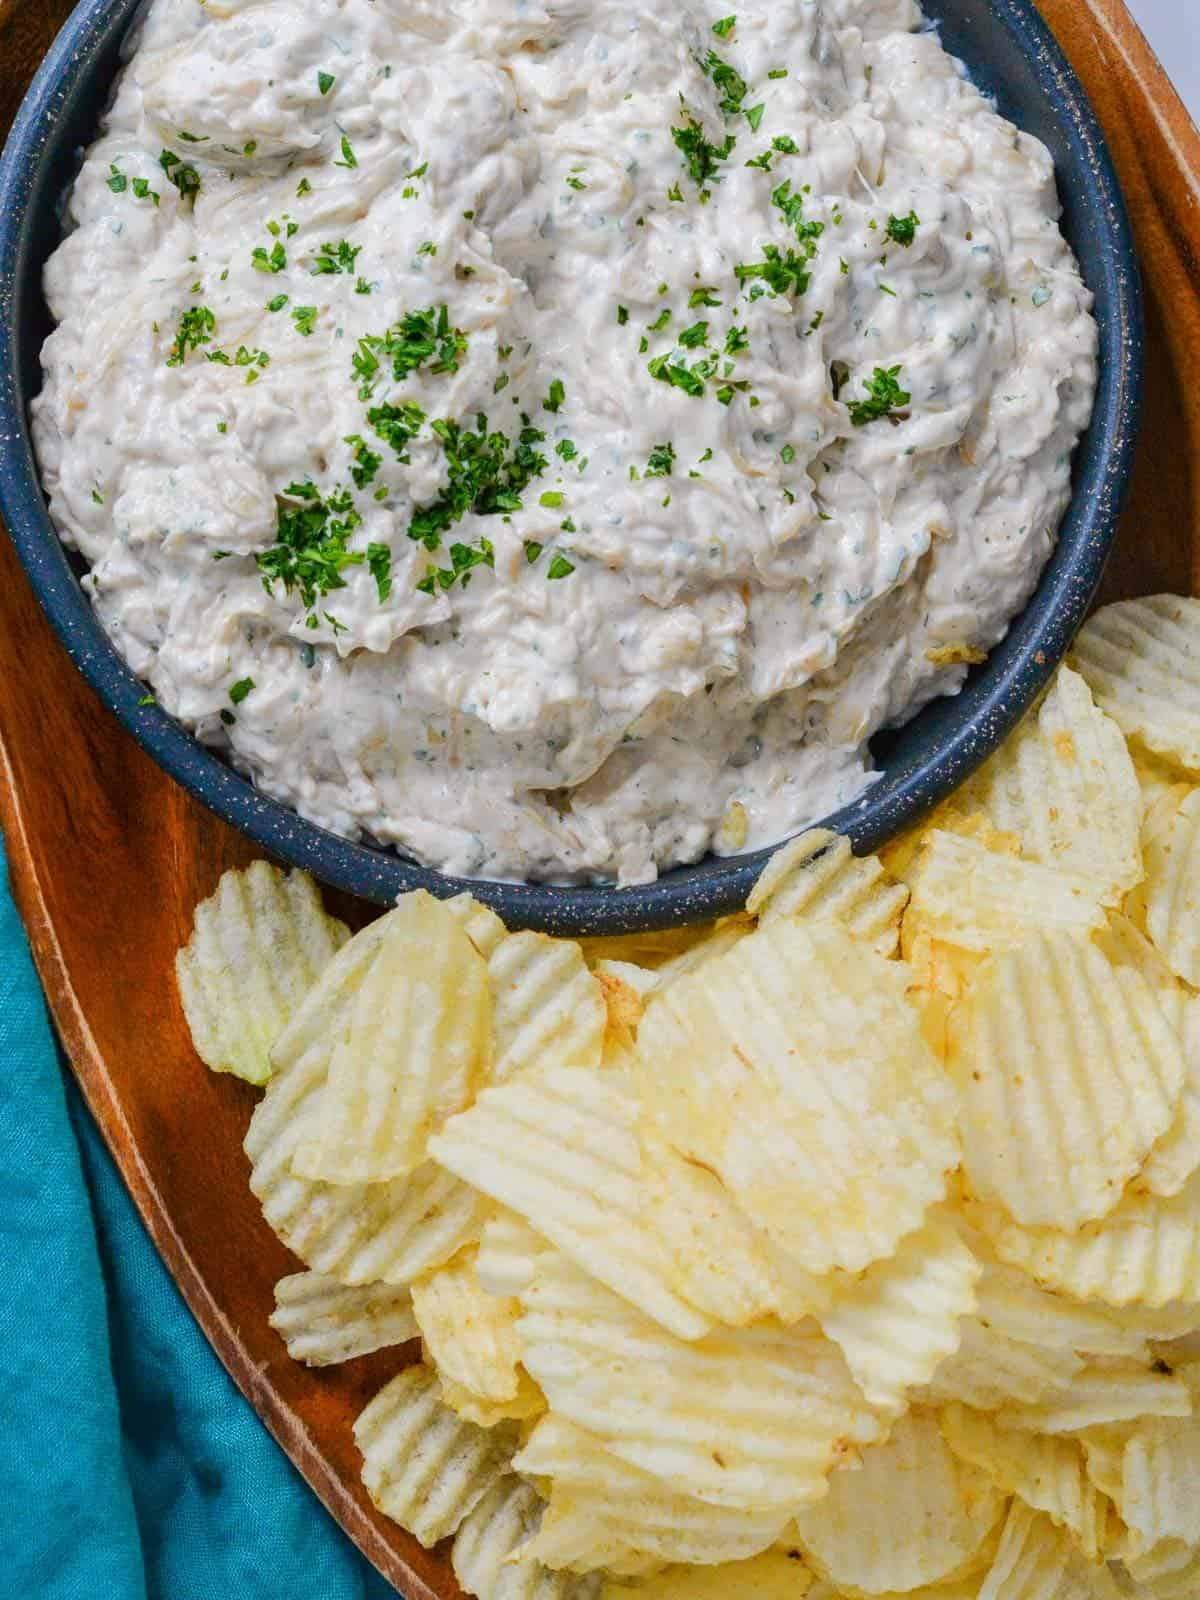 Home made french onion dip served with way lays